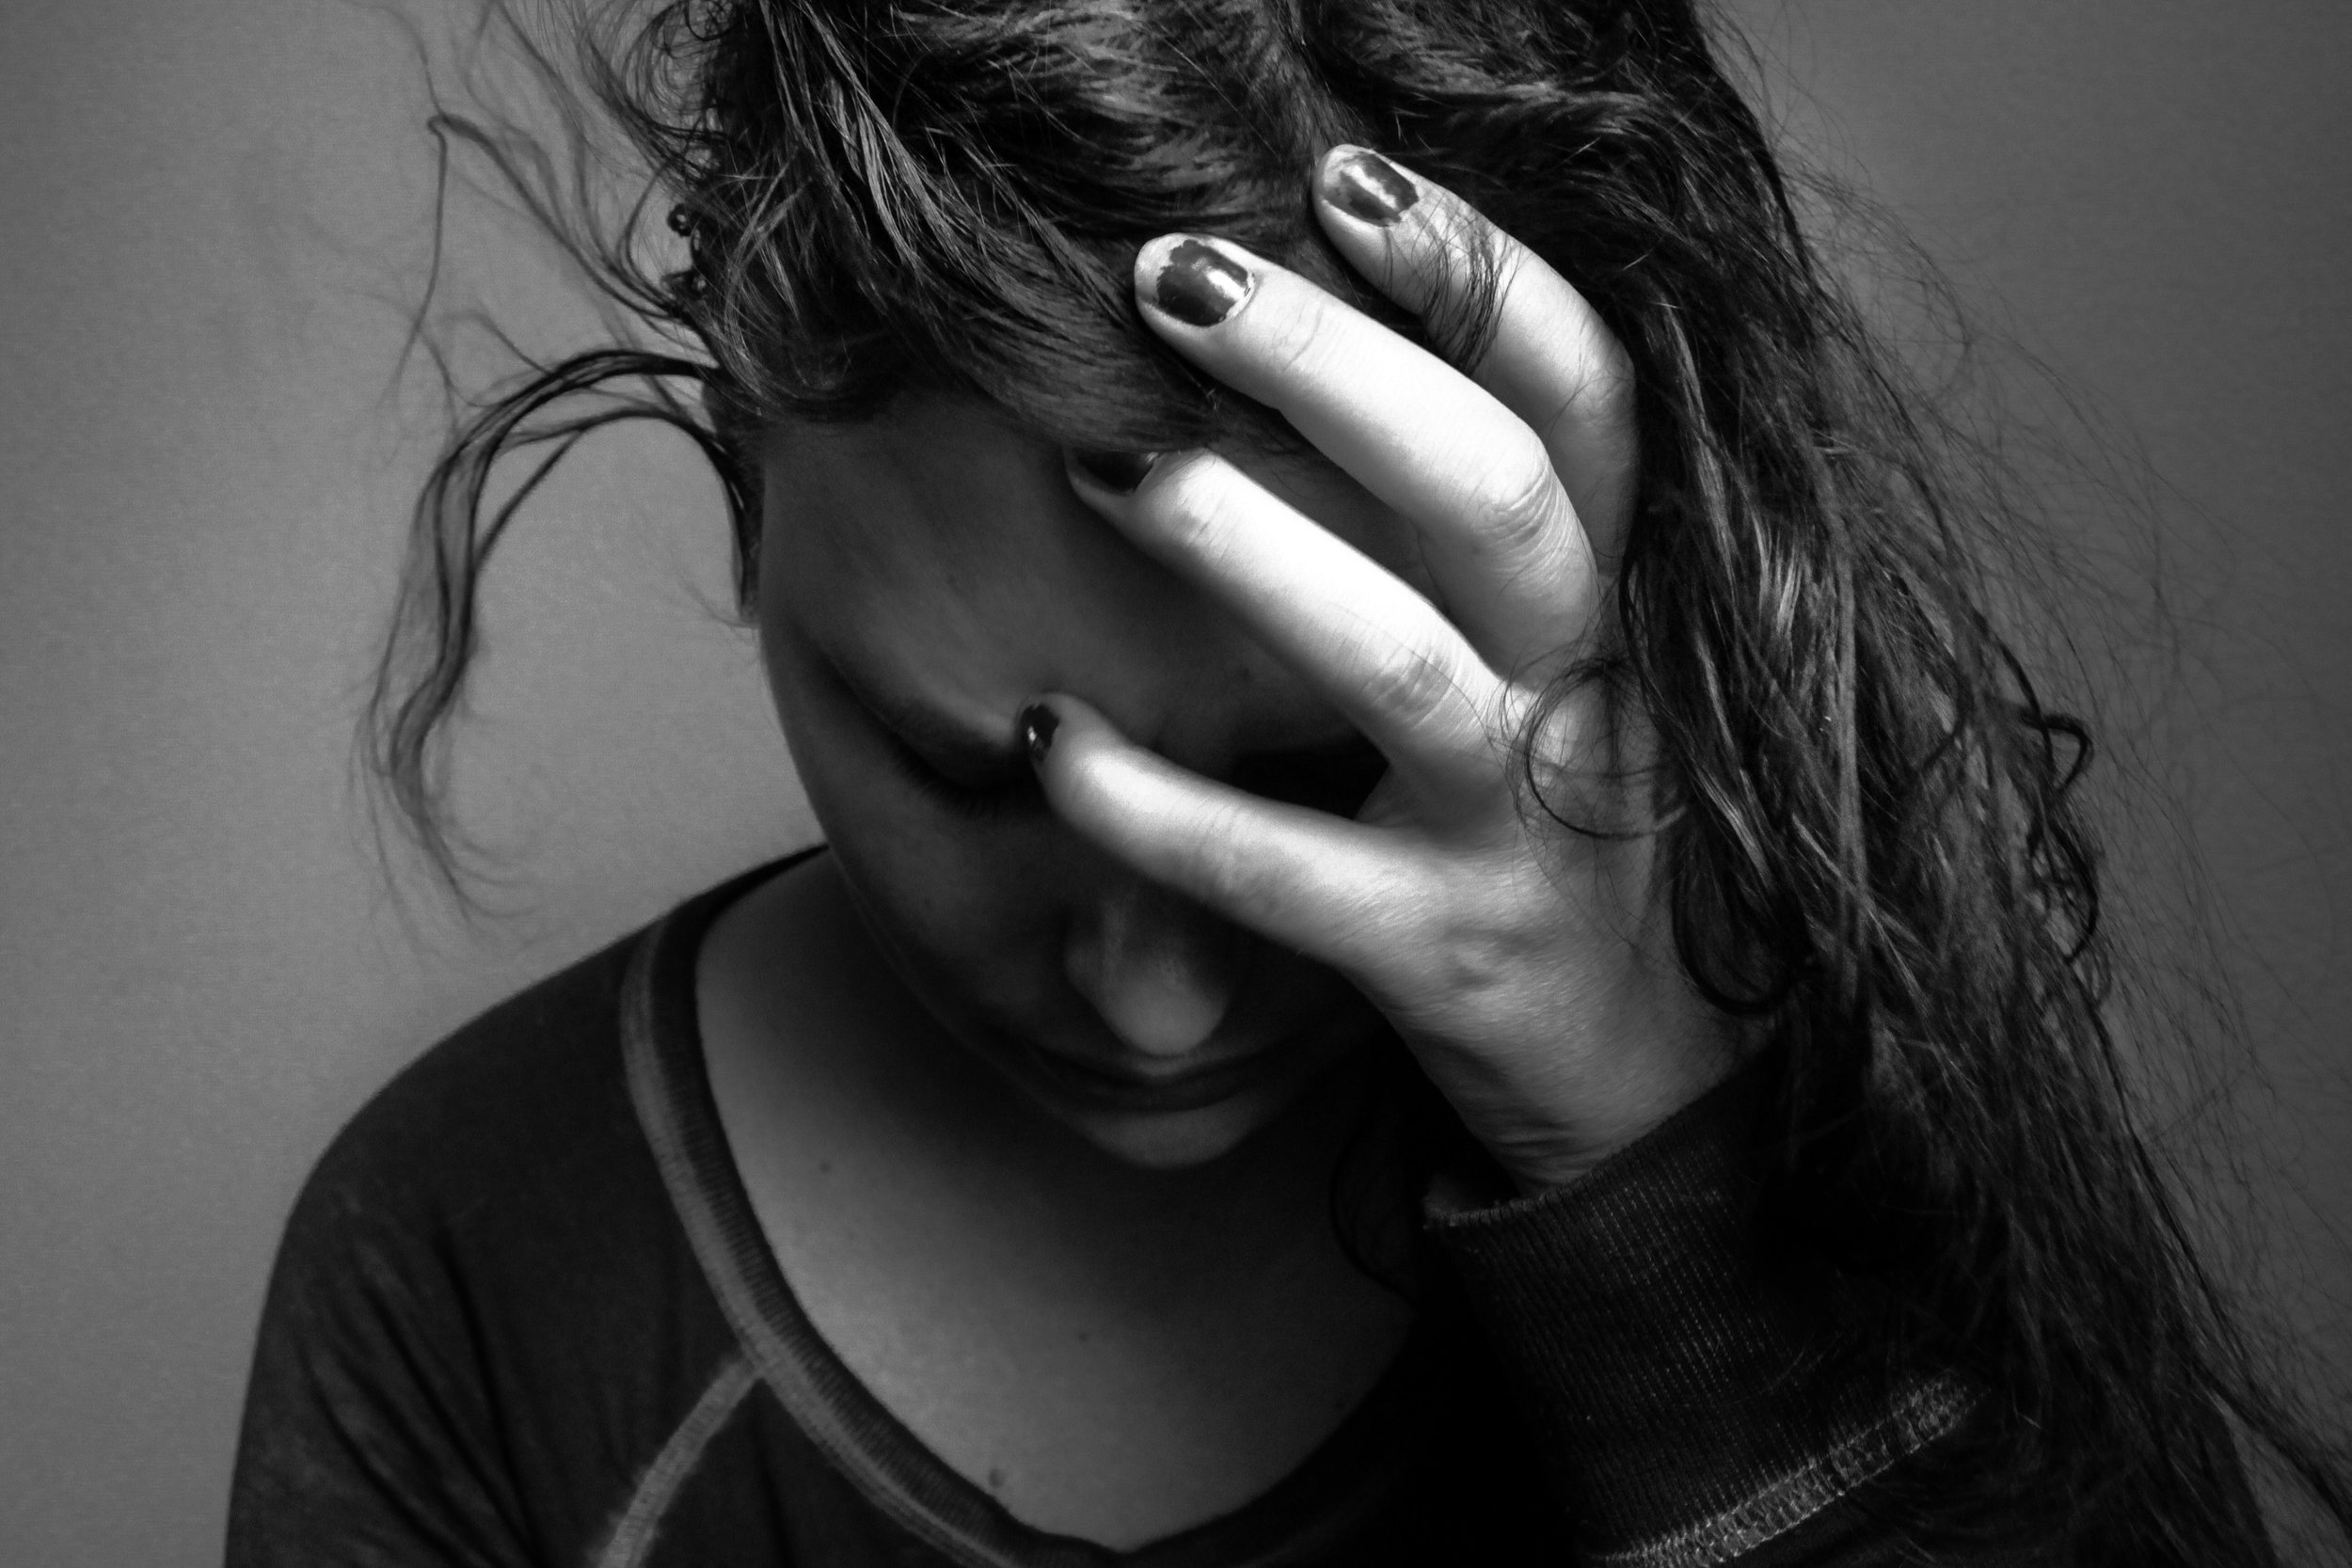 close-up-of-young-woman-sad-frustrated-somber-depressed-emotional-stress-520227582_5184x3456.jpeg